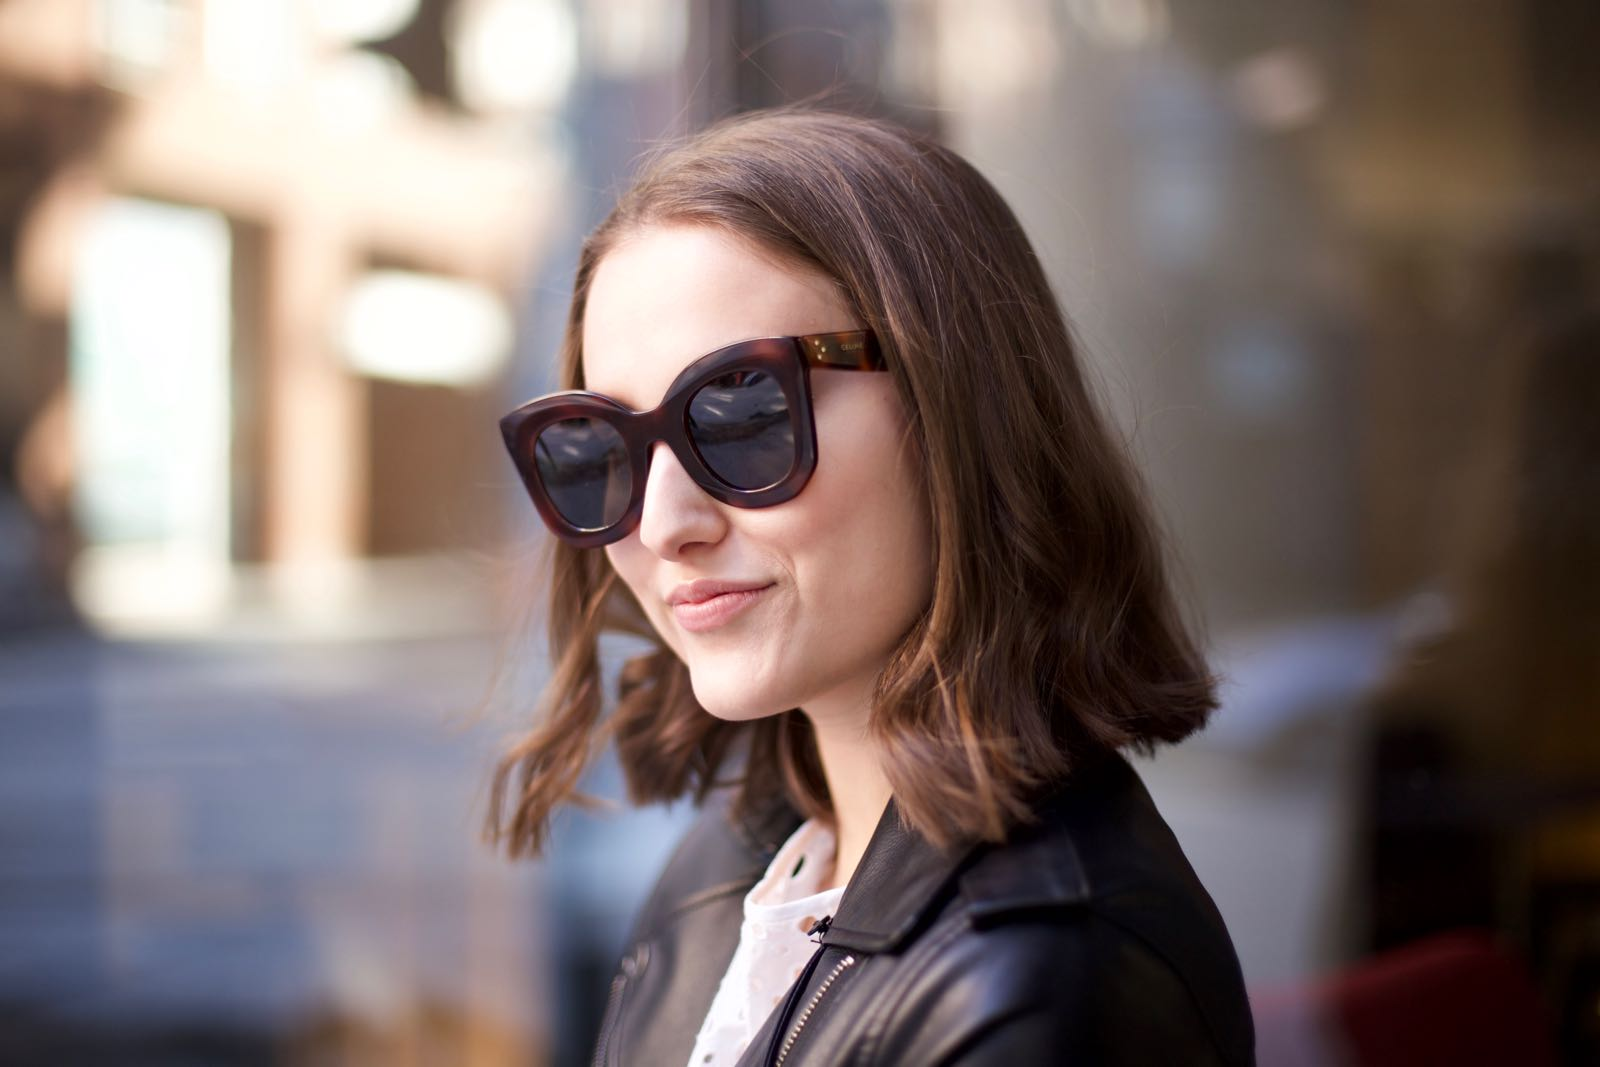 staycation-celine-sunglasses - 2.jpg